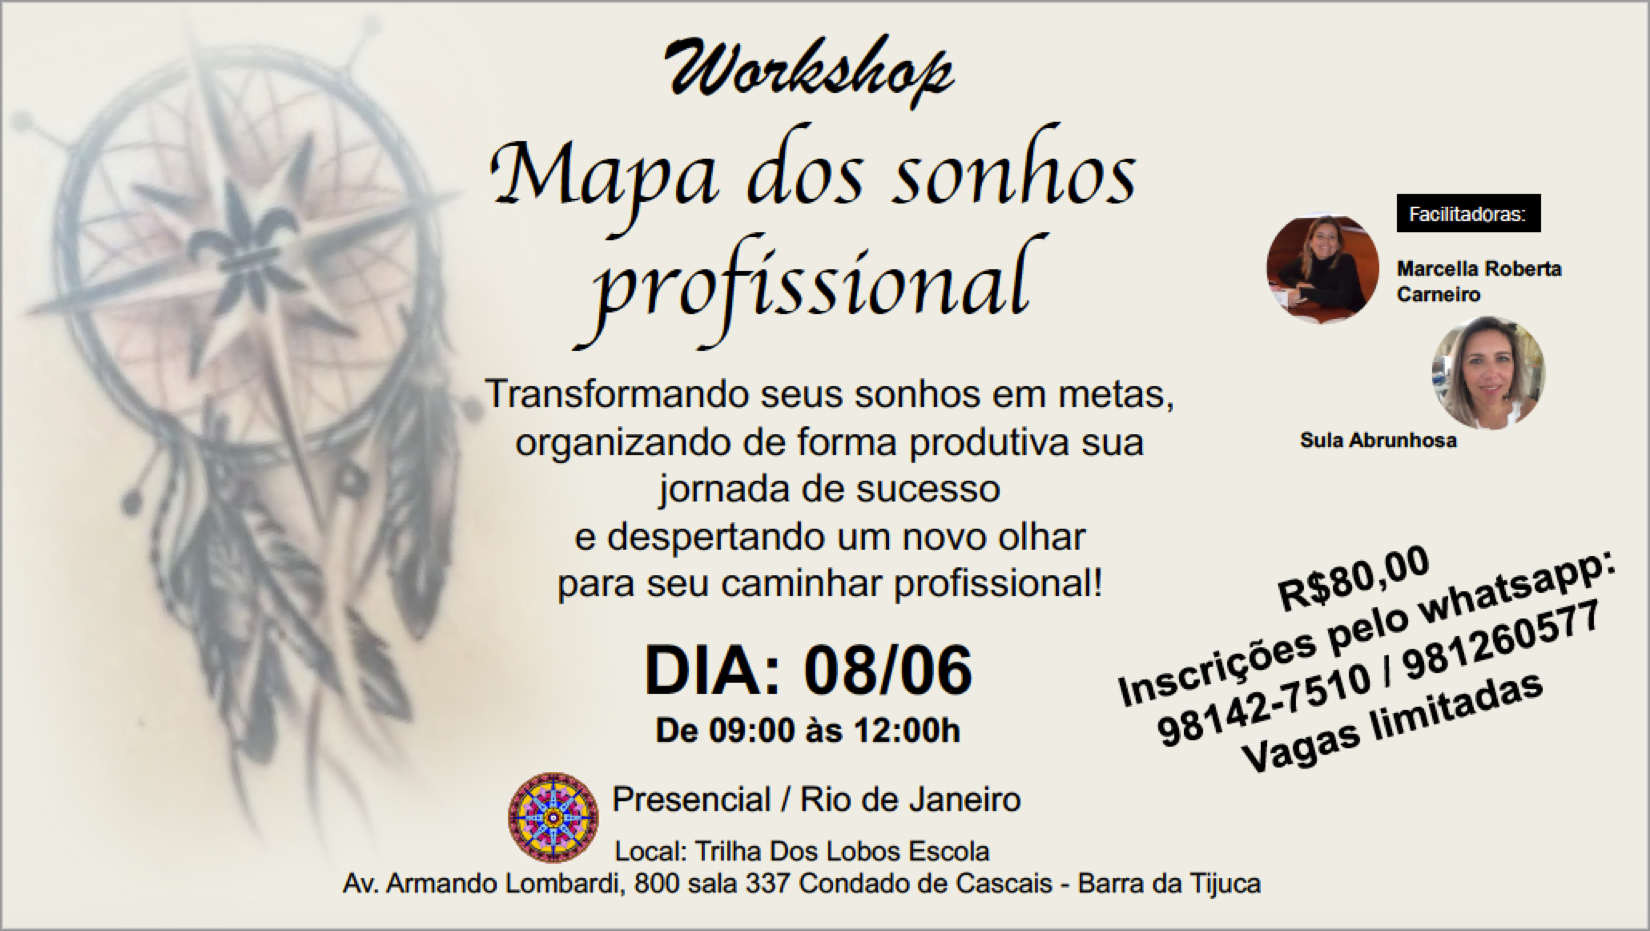 workshop mapadossonhos